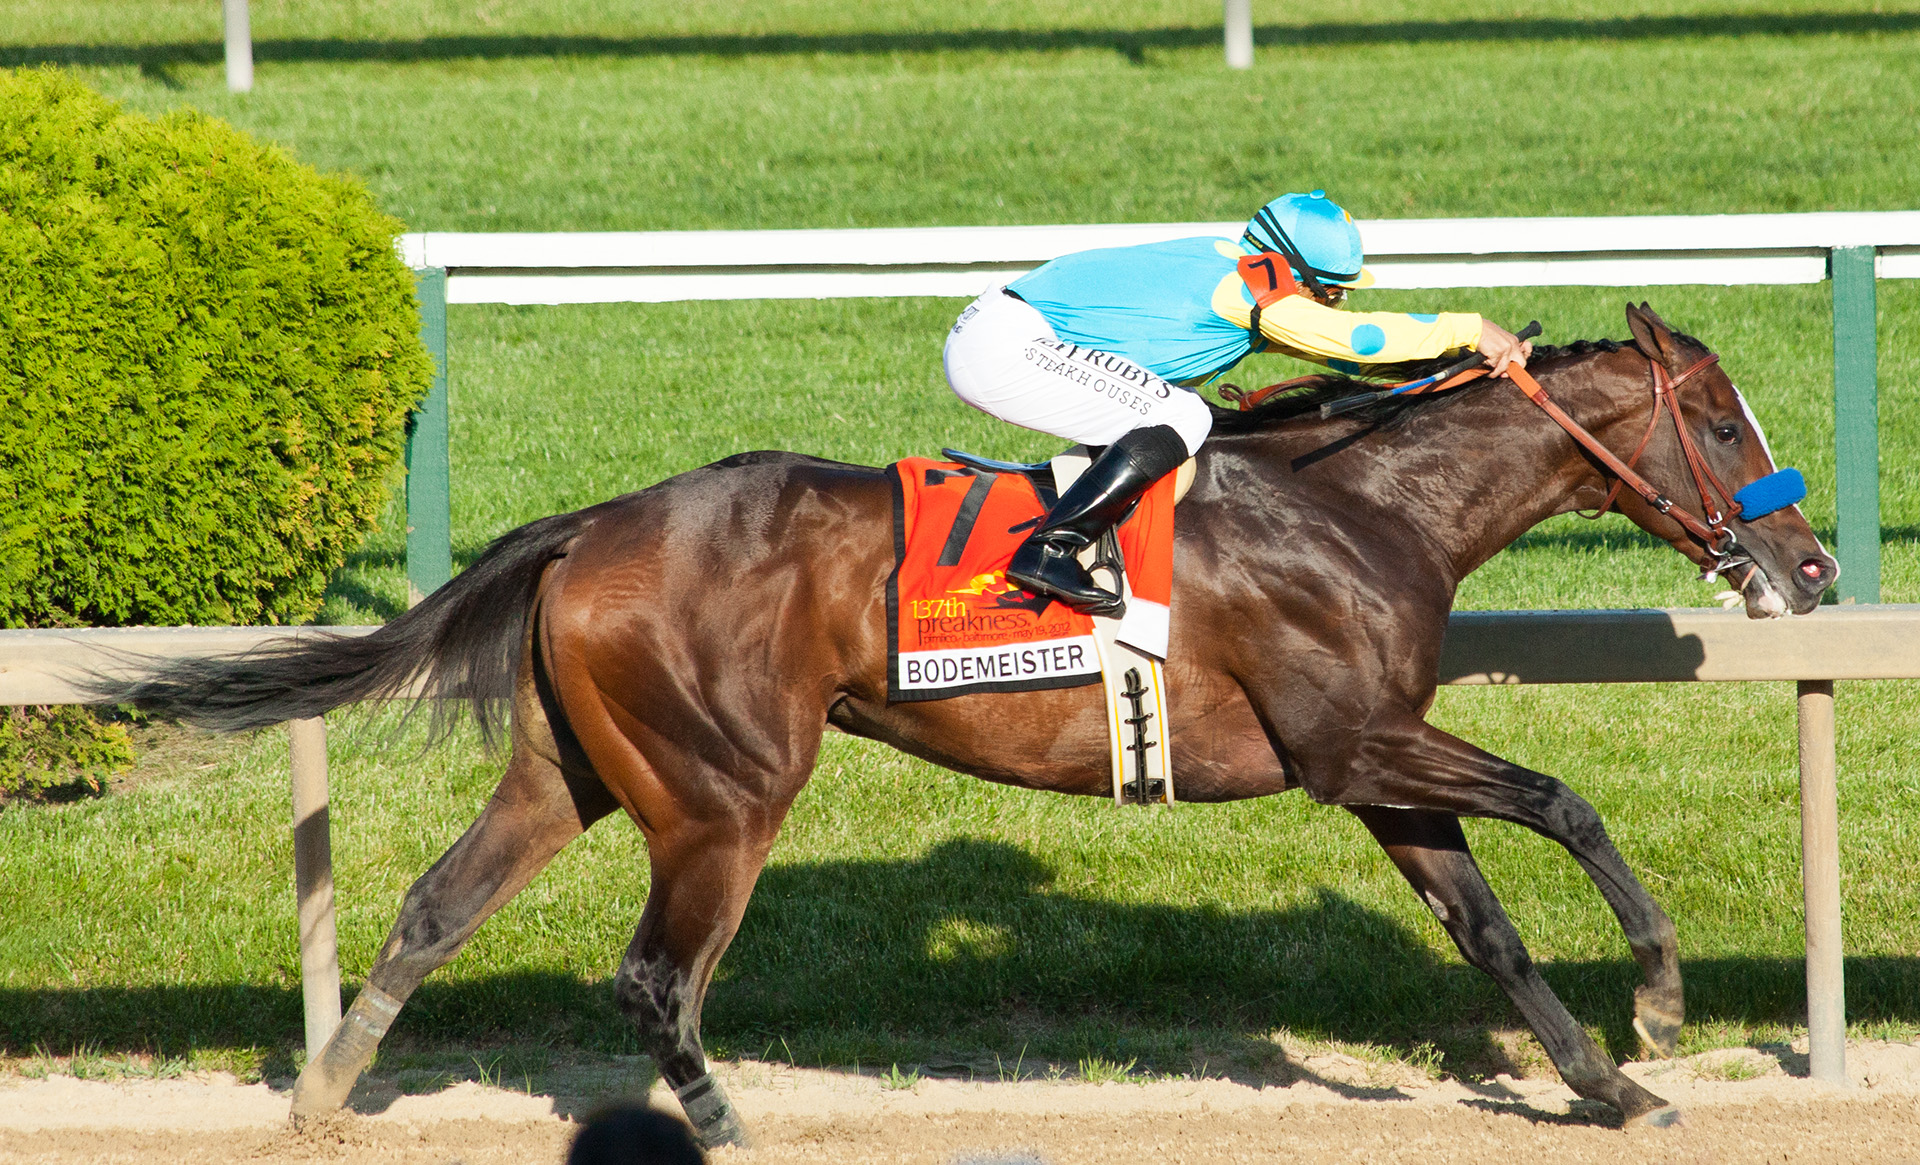 Bodemeister in the final stretch.